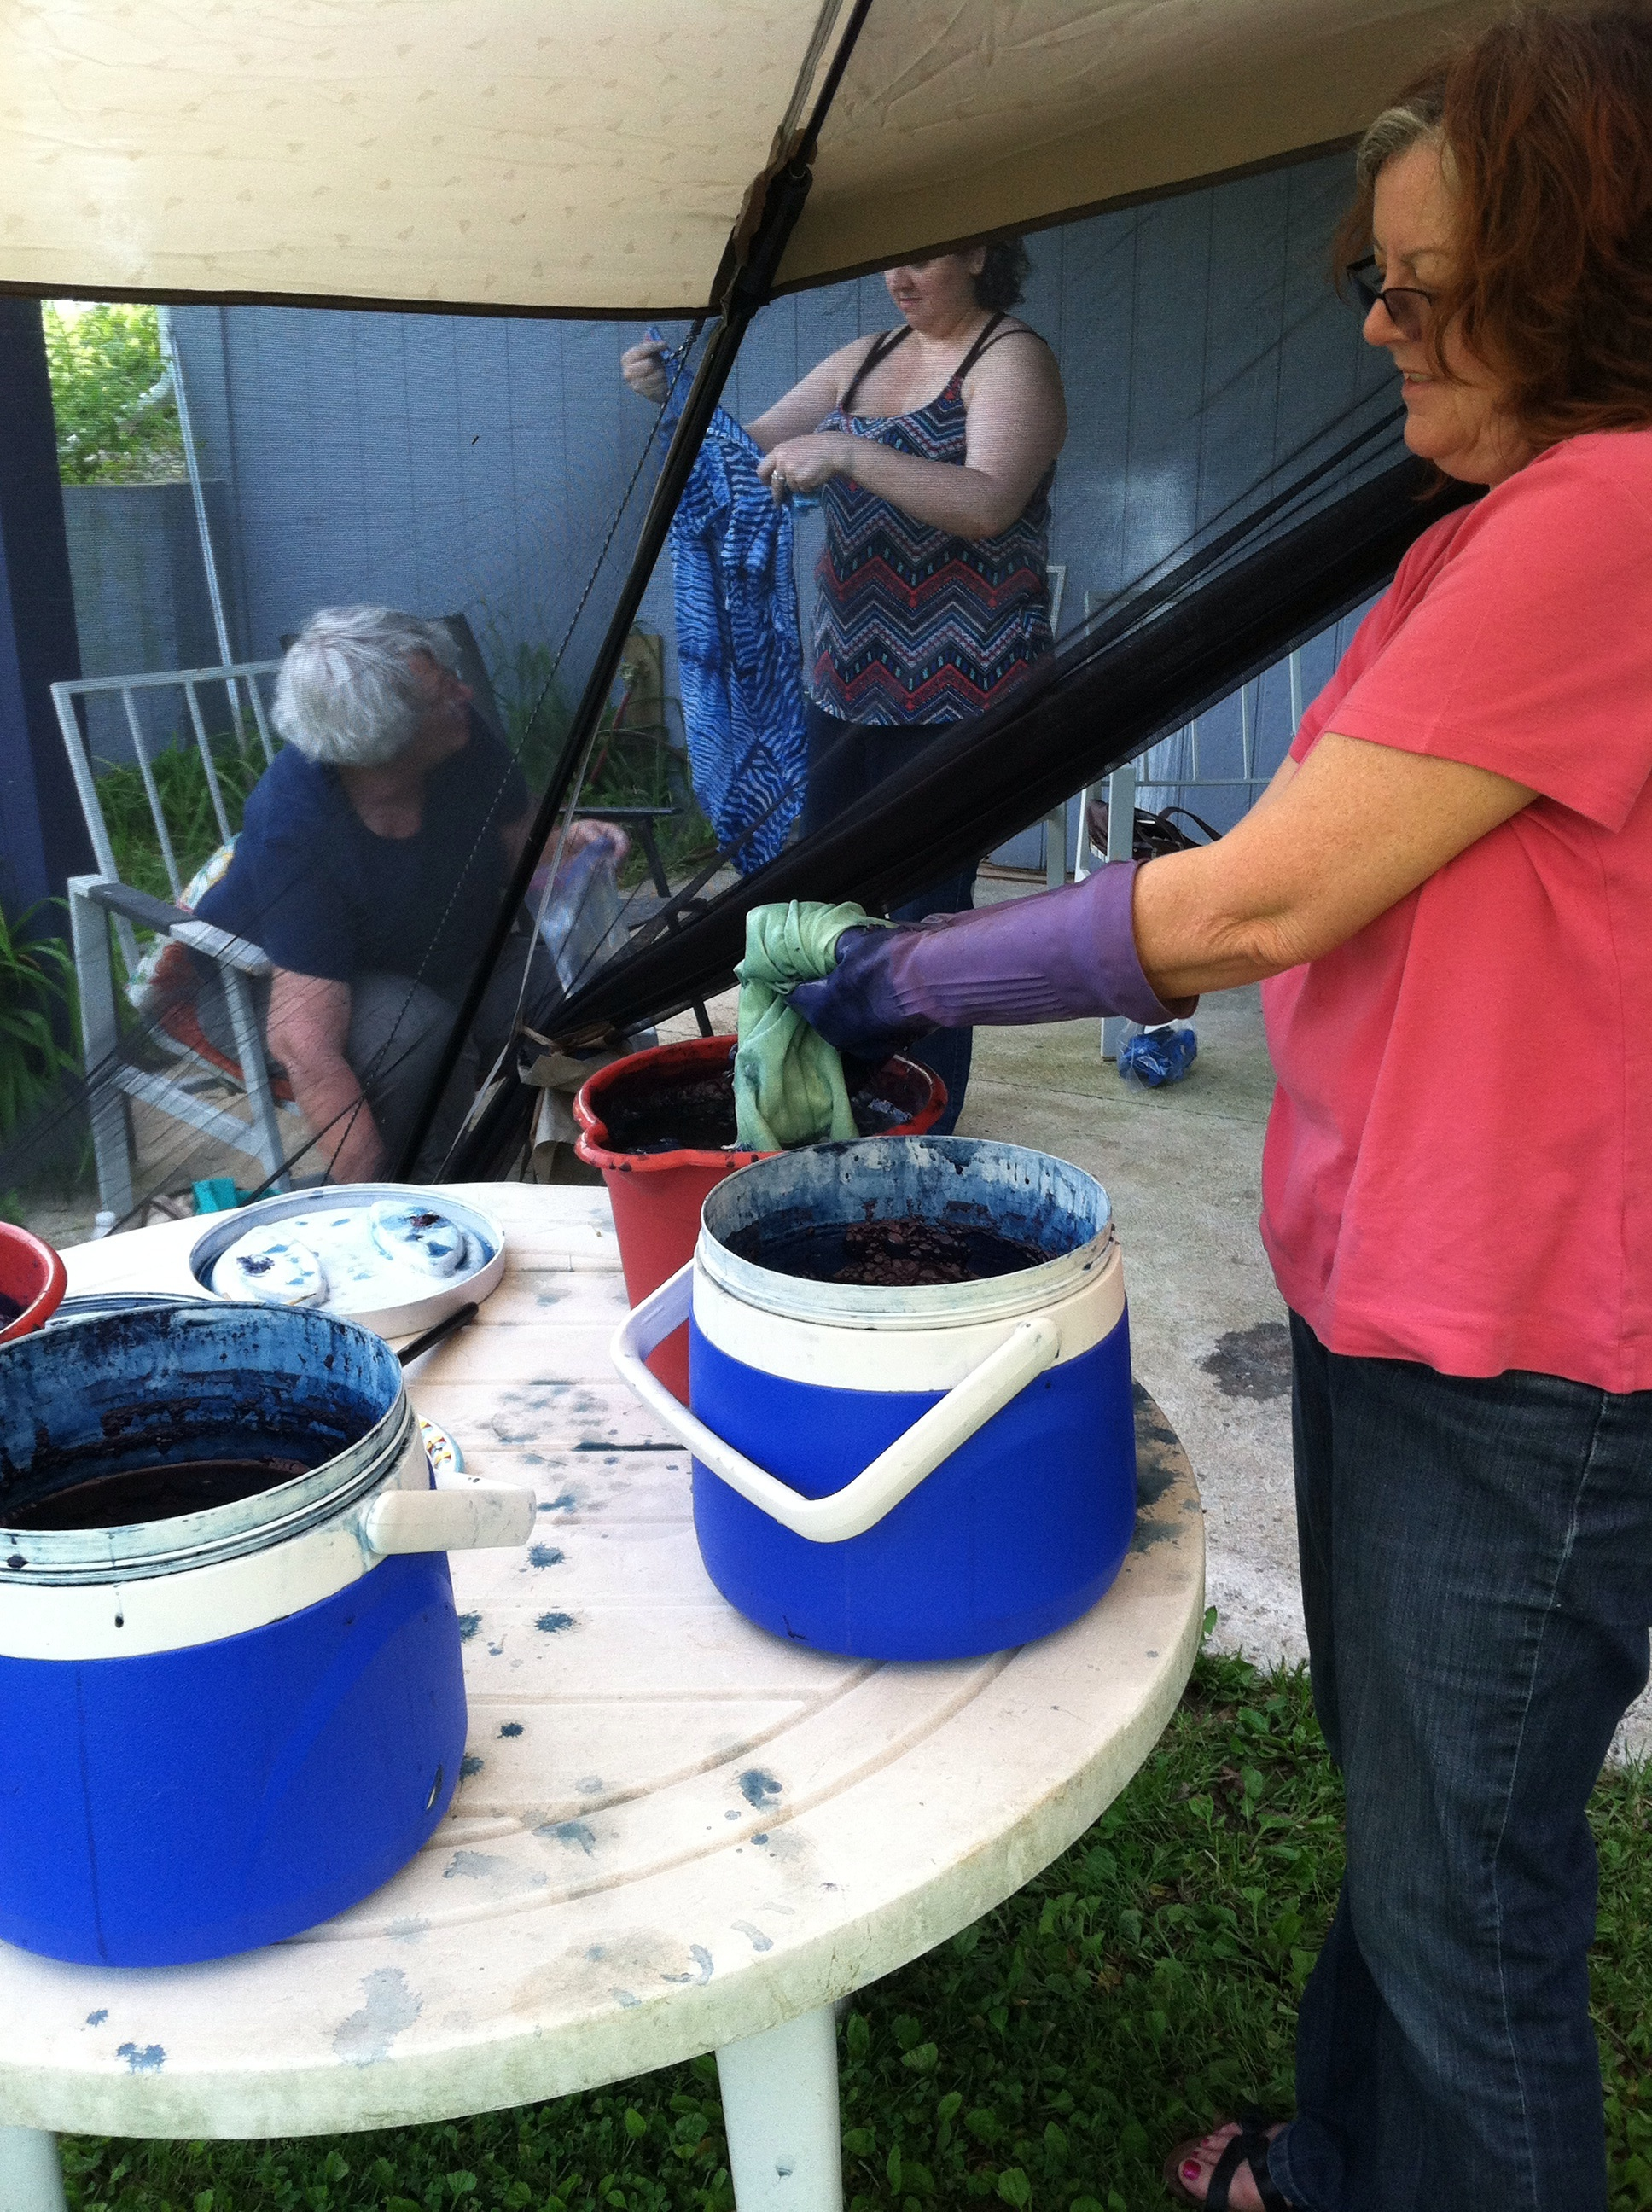 Learned how to indigo dye fabric. It was all very informative because indigo can be a little finicky.